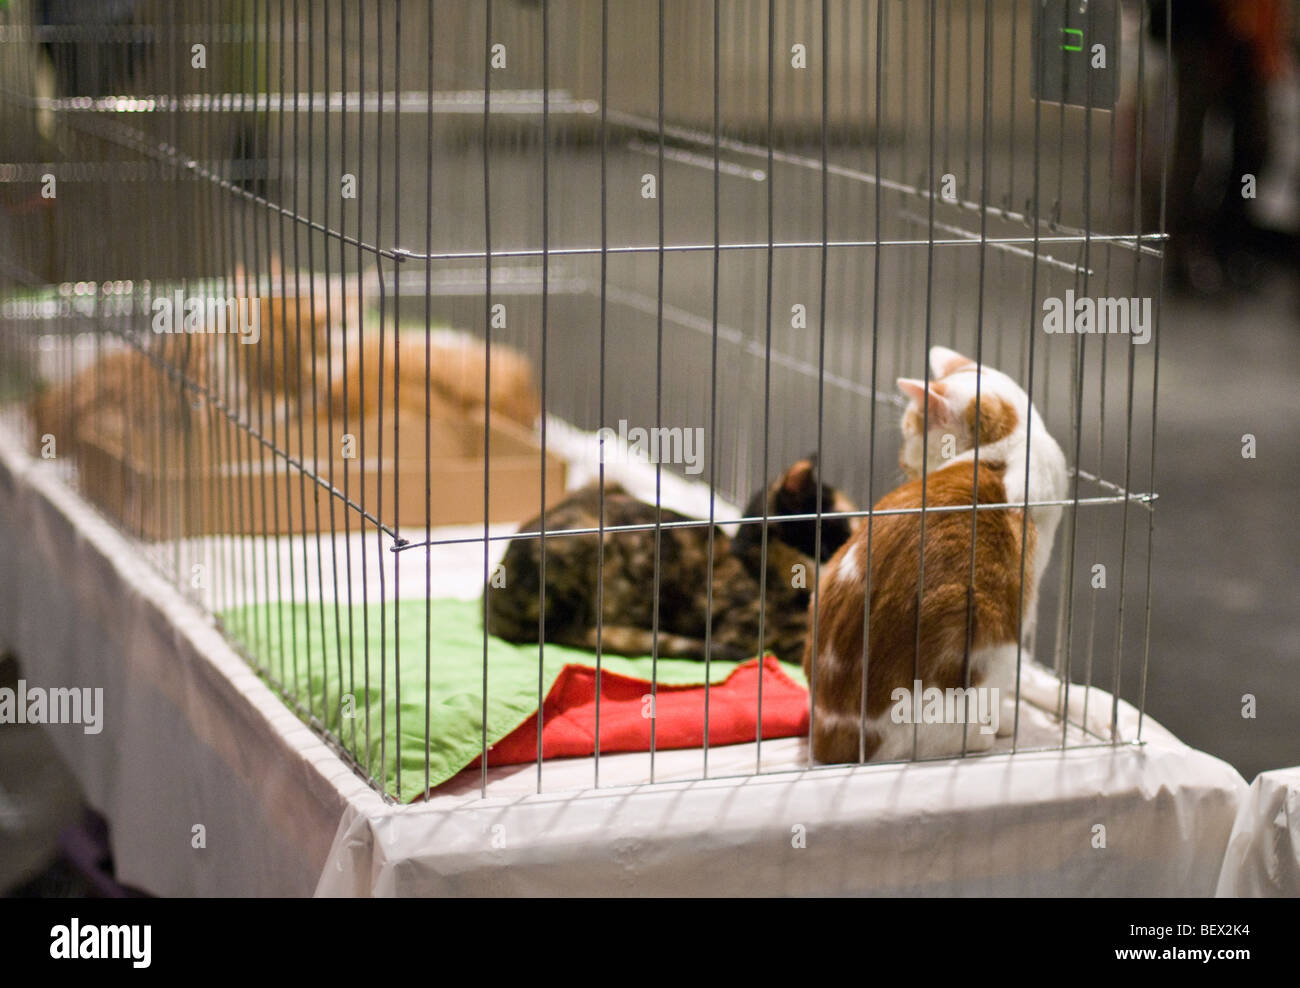 Cats at an animal rescue center waiting to be adopted - Stock Image